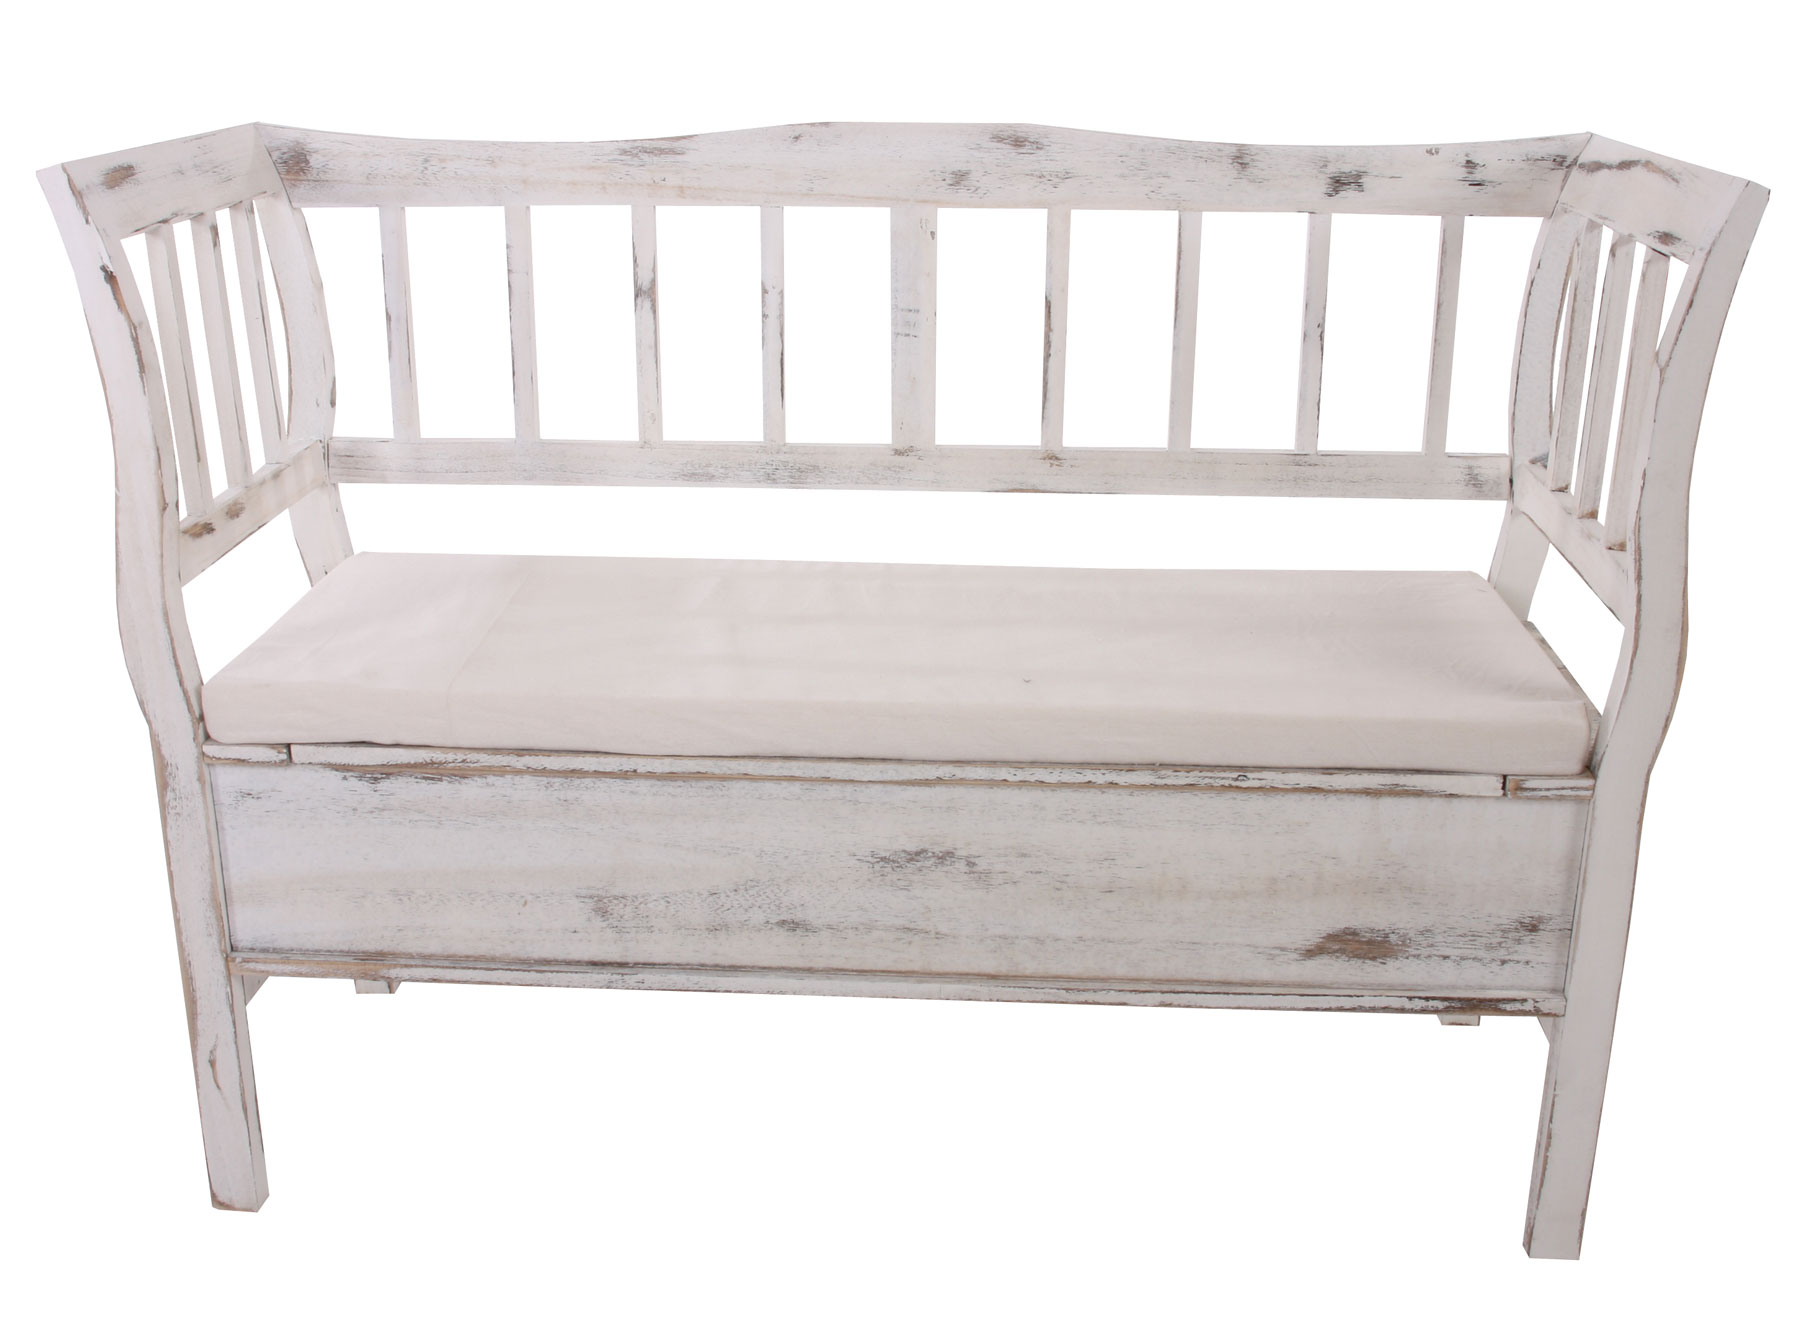 sitzbank t207 staufach kissen weiss shabby. Black Bedroom Furniture Sets. Home Design Ideas